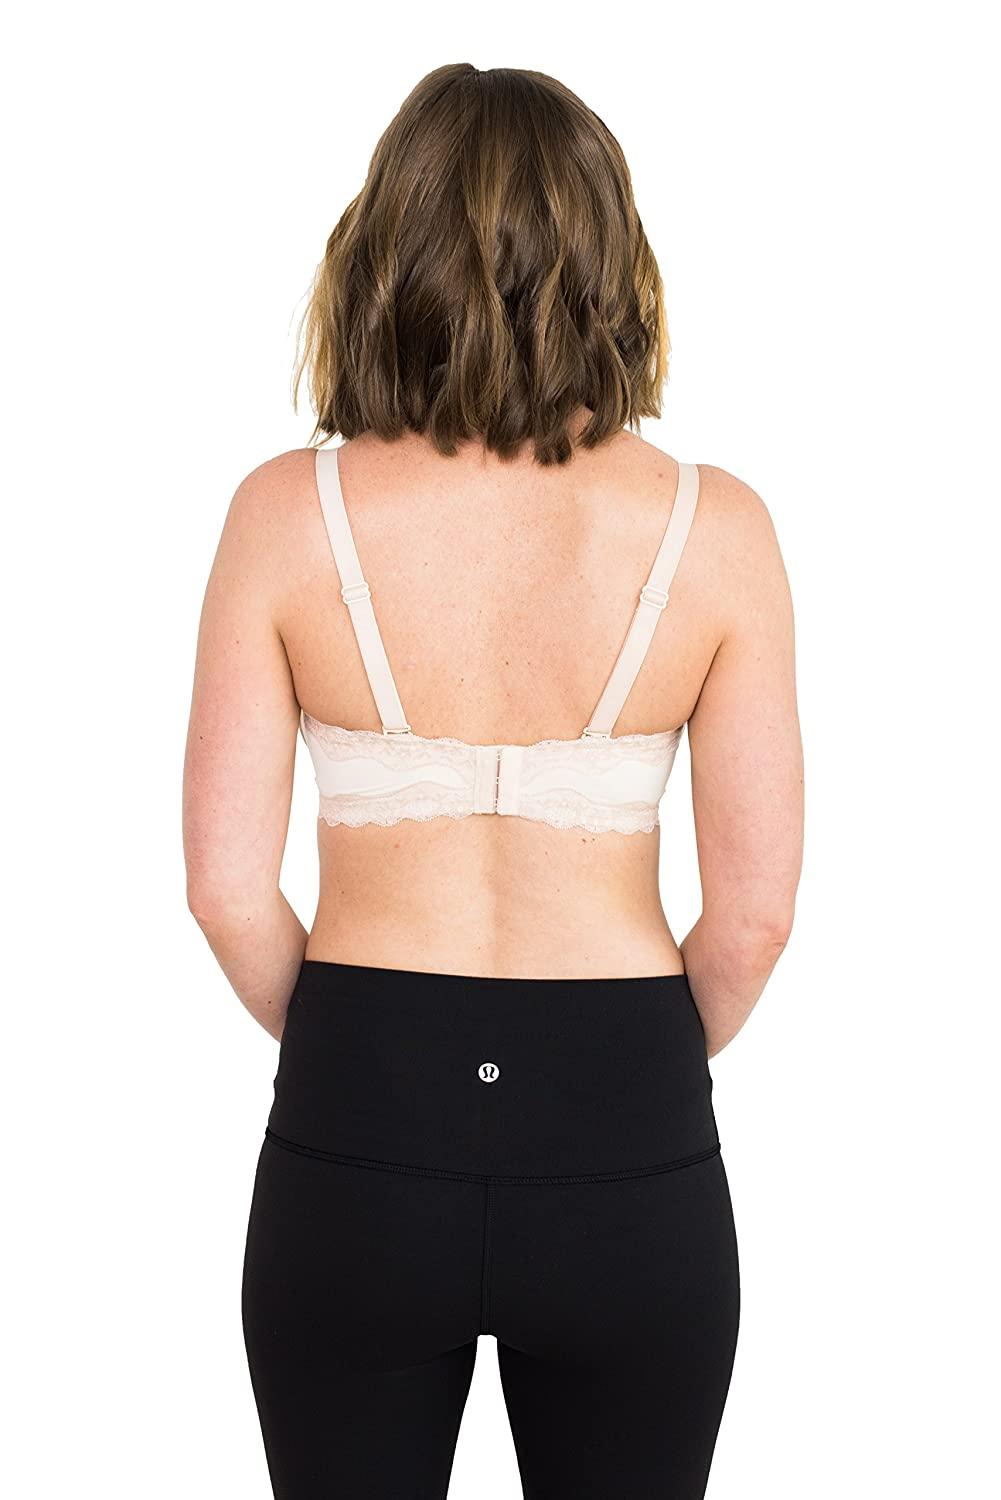 Patent Pending Blush 40 DD Simple Wishes SuperMom All-in-One Nursing and Pumping Bra